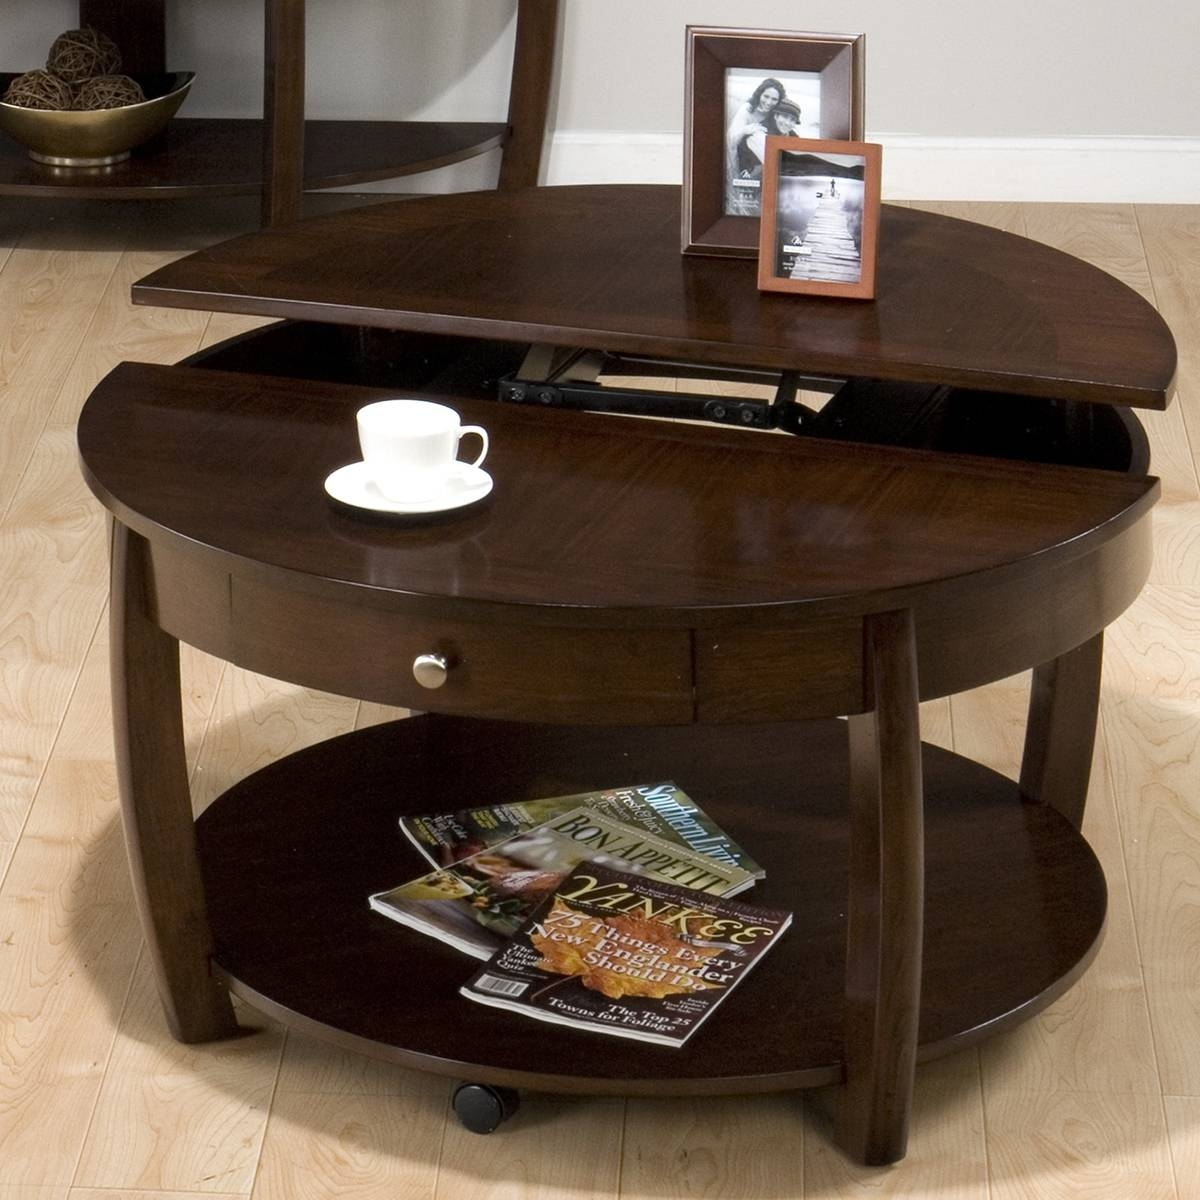 Walmart Coffee Table And End Tables | Coffee Tables Decoration for Small Circle Coffee Tables (Image 30 of 30)